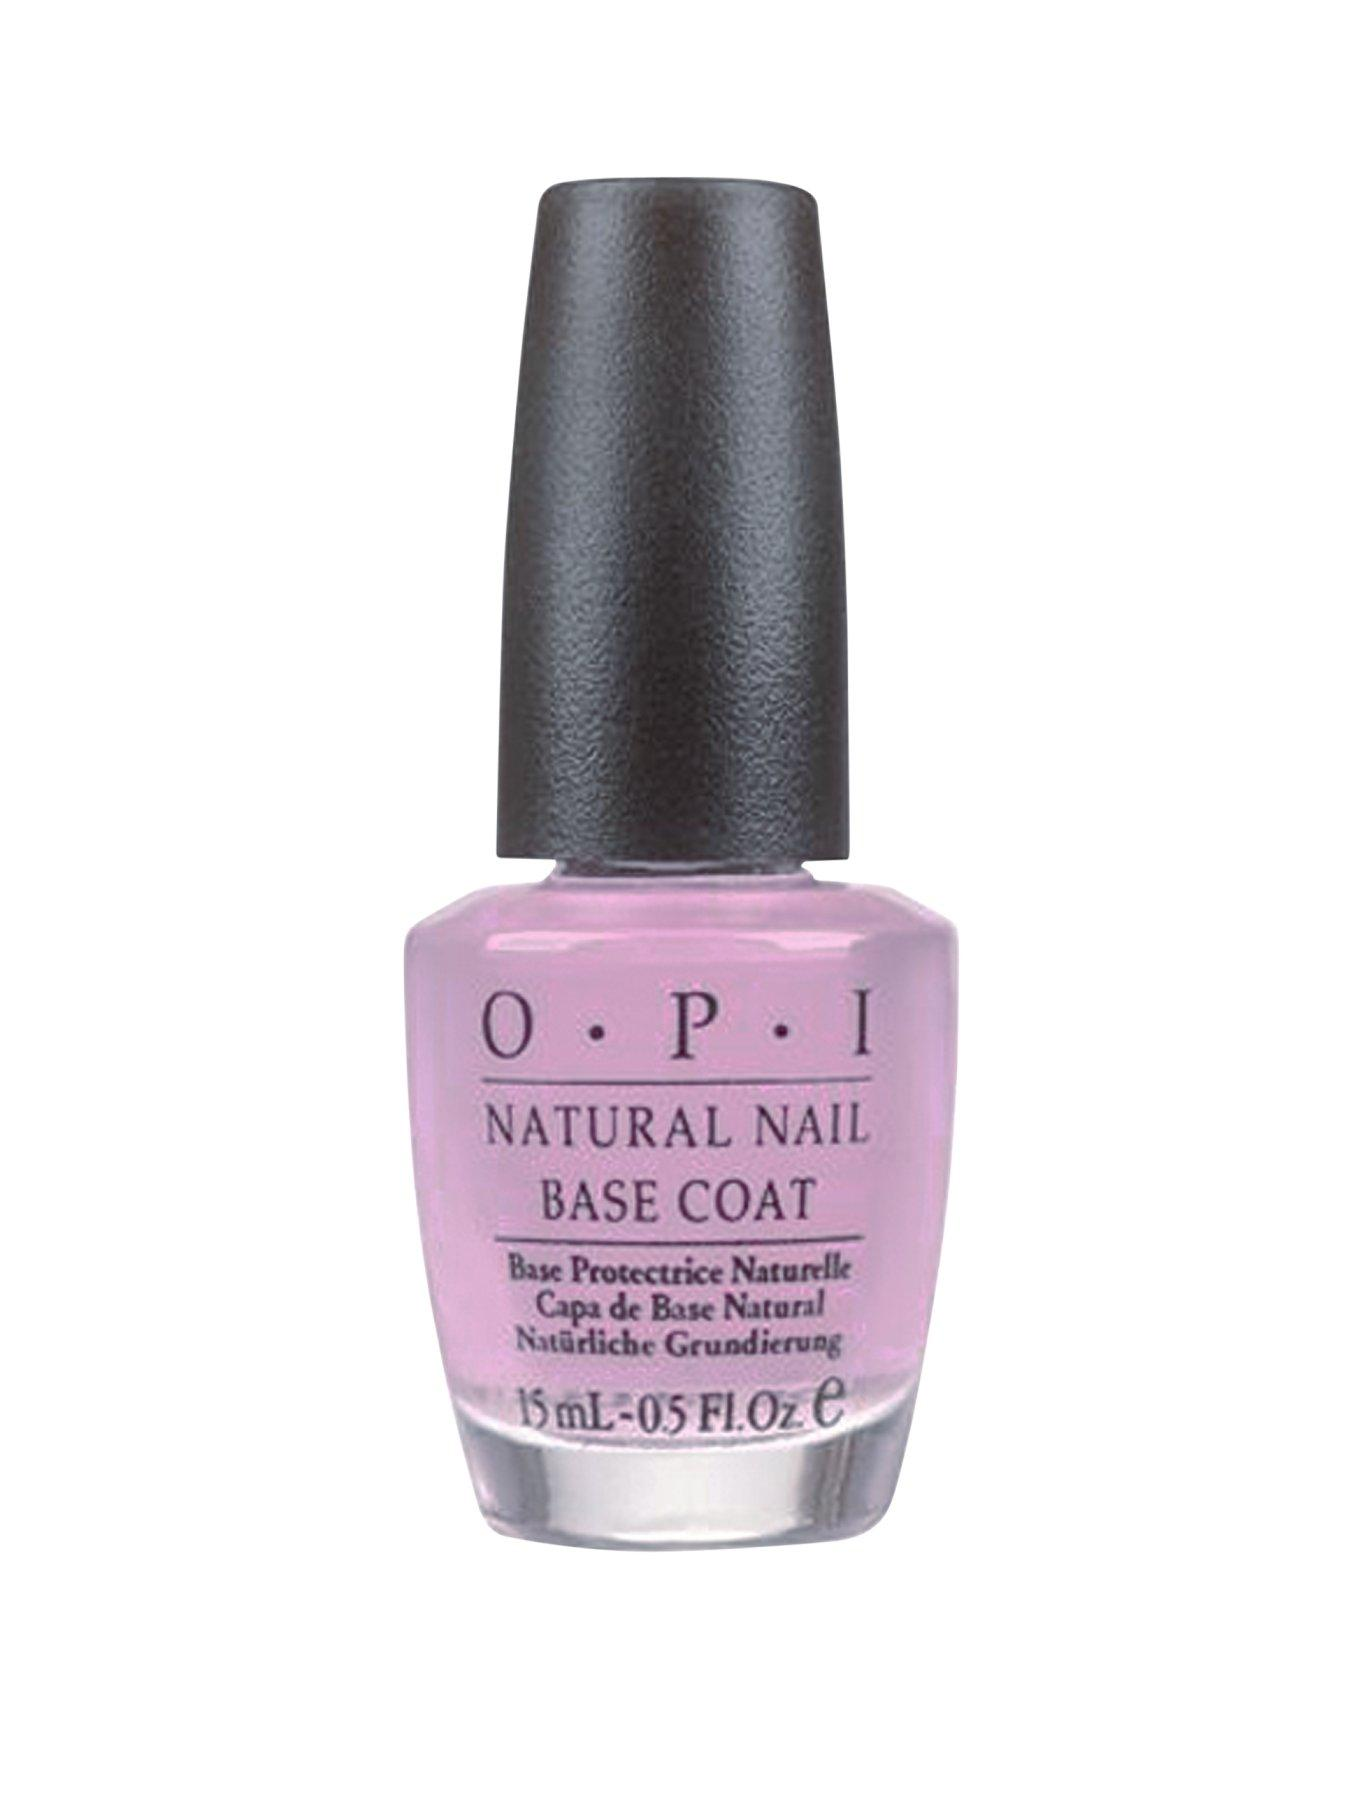 OPI Nail Polish - Natural Nail Base Coat